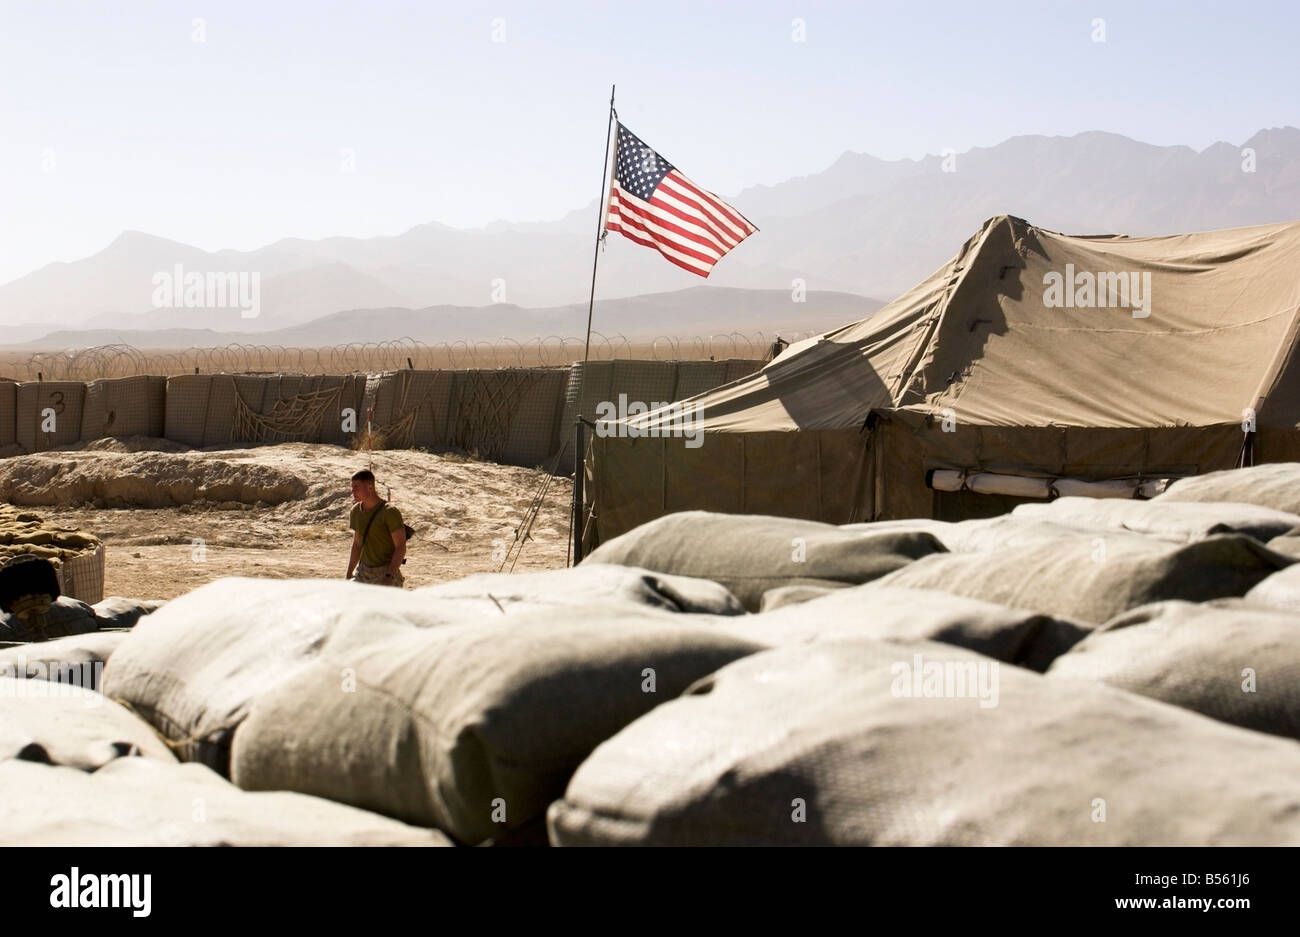 A U.S. soldier walks out of a tent in the PRT outside Gardez, Paktia province, Afghanistan, October 2004. - Stock Image